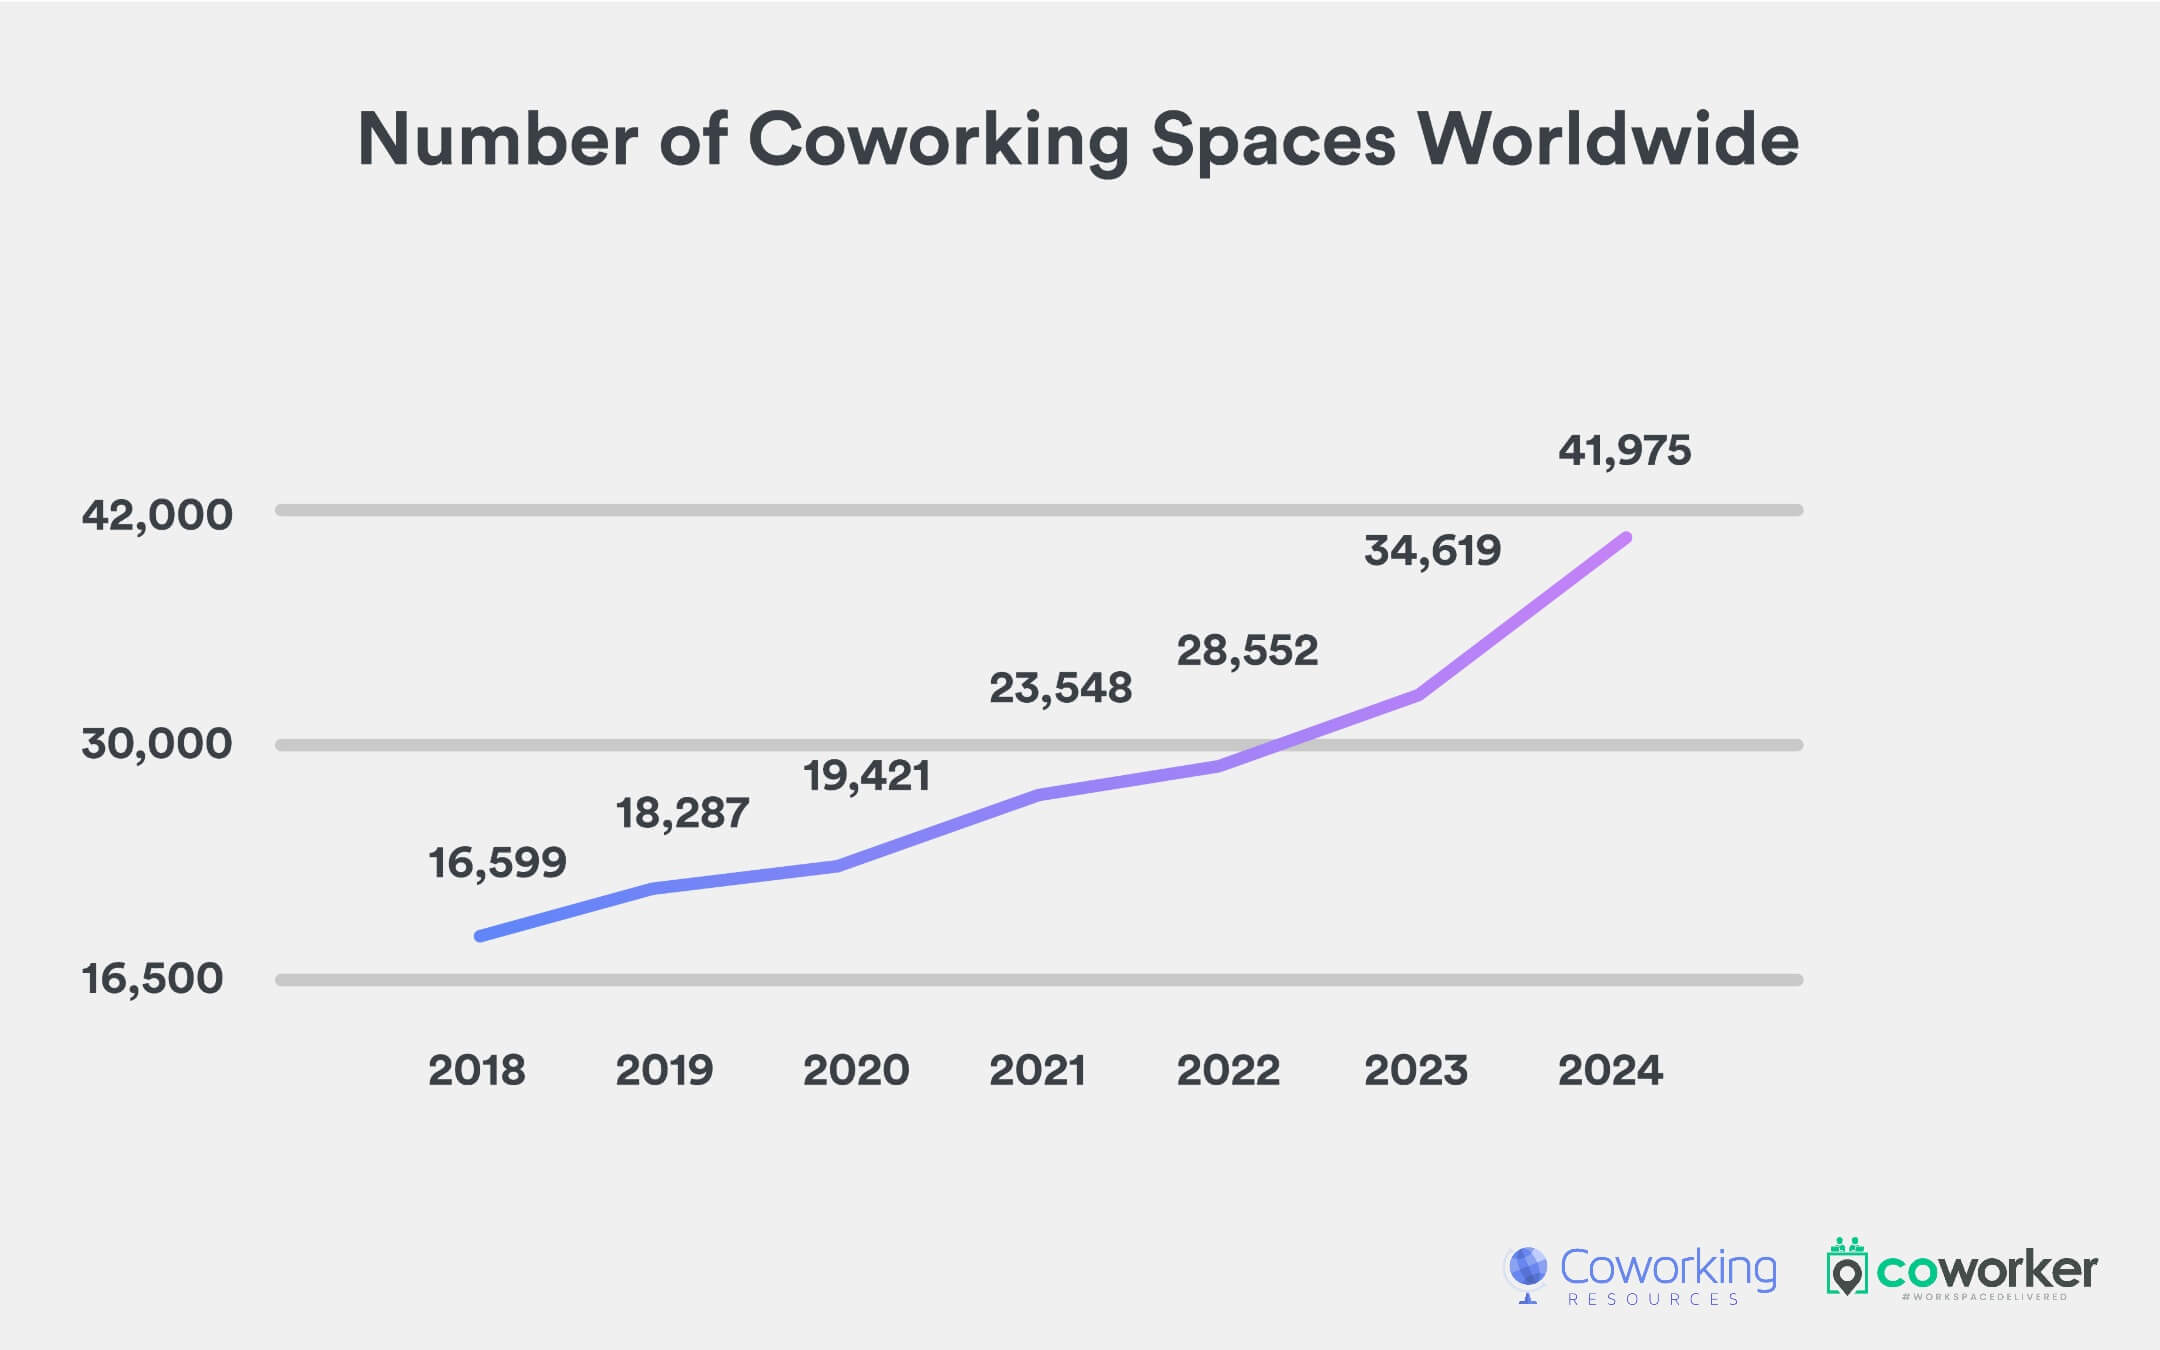 Number of coworking spaces worldwide (2018-2024)